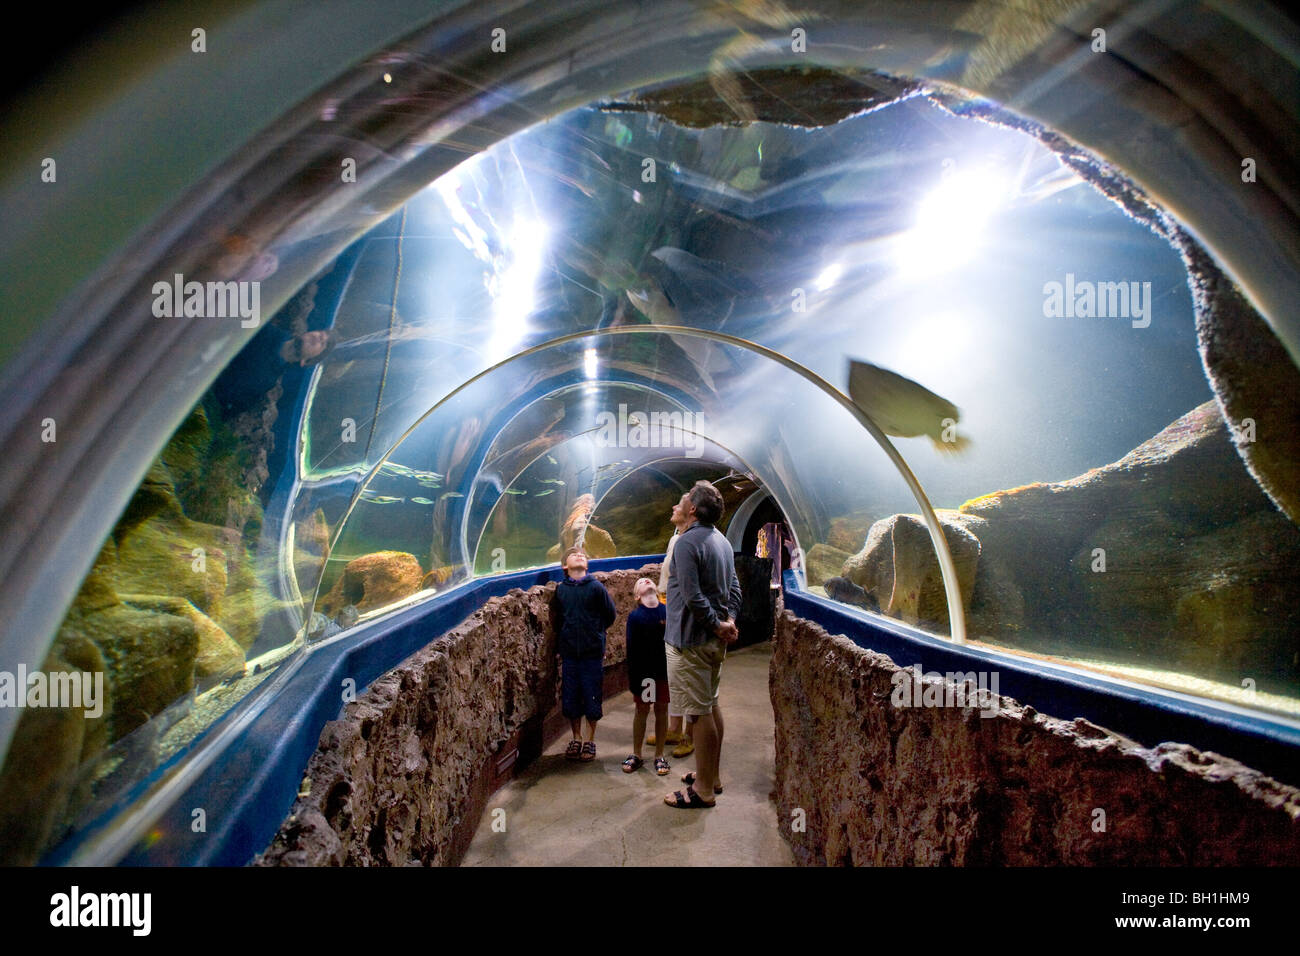 People visiting Aquarium, Westerland, Sylt Island, Schleswig-Holstein, Germany - Stock Image